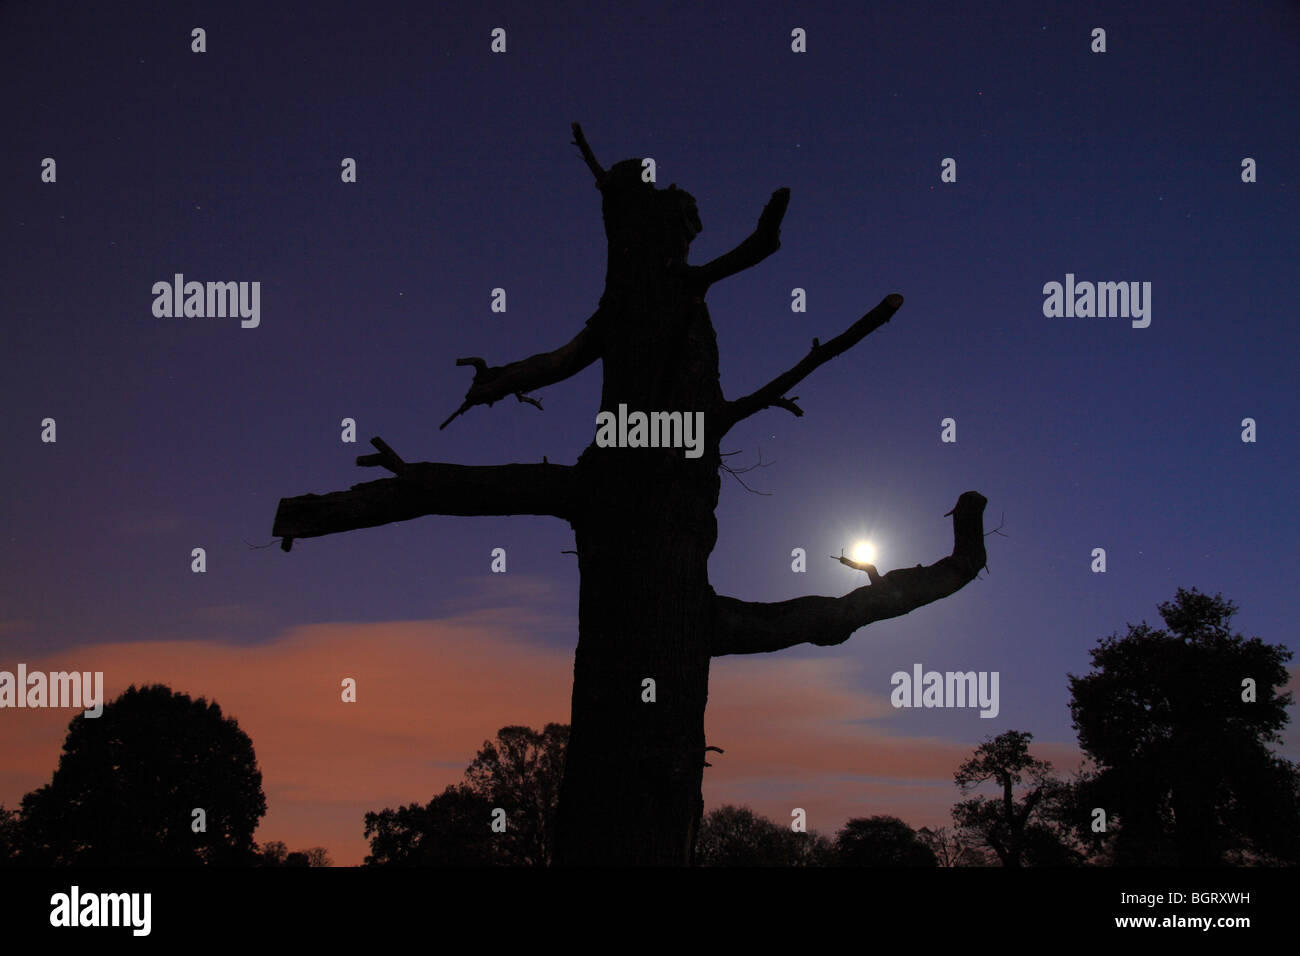 Profile of a dead tree with a stunning sky and moon shot in Bushy Park, Richmond, UK at sunset. - Stock Image